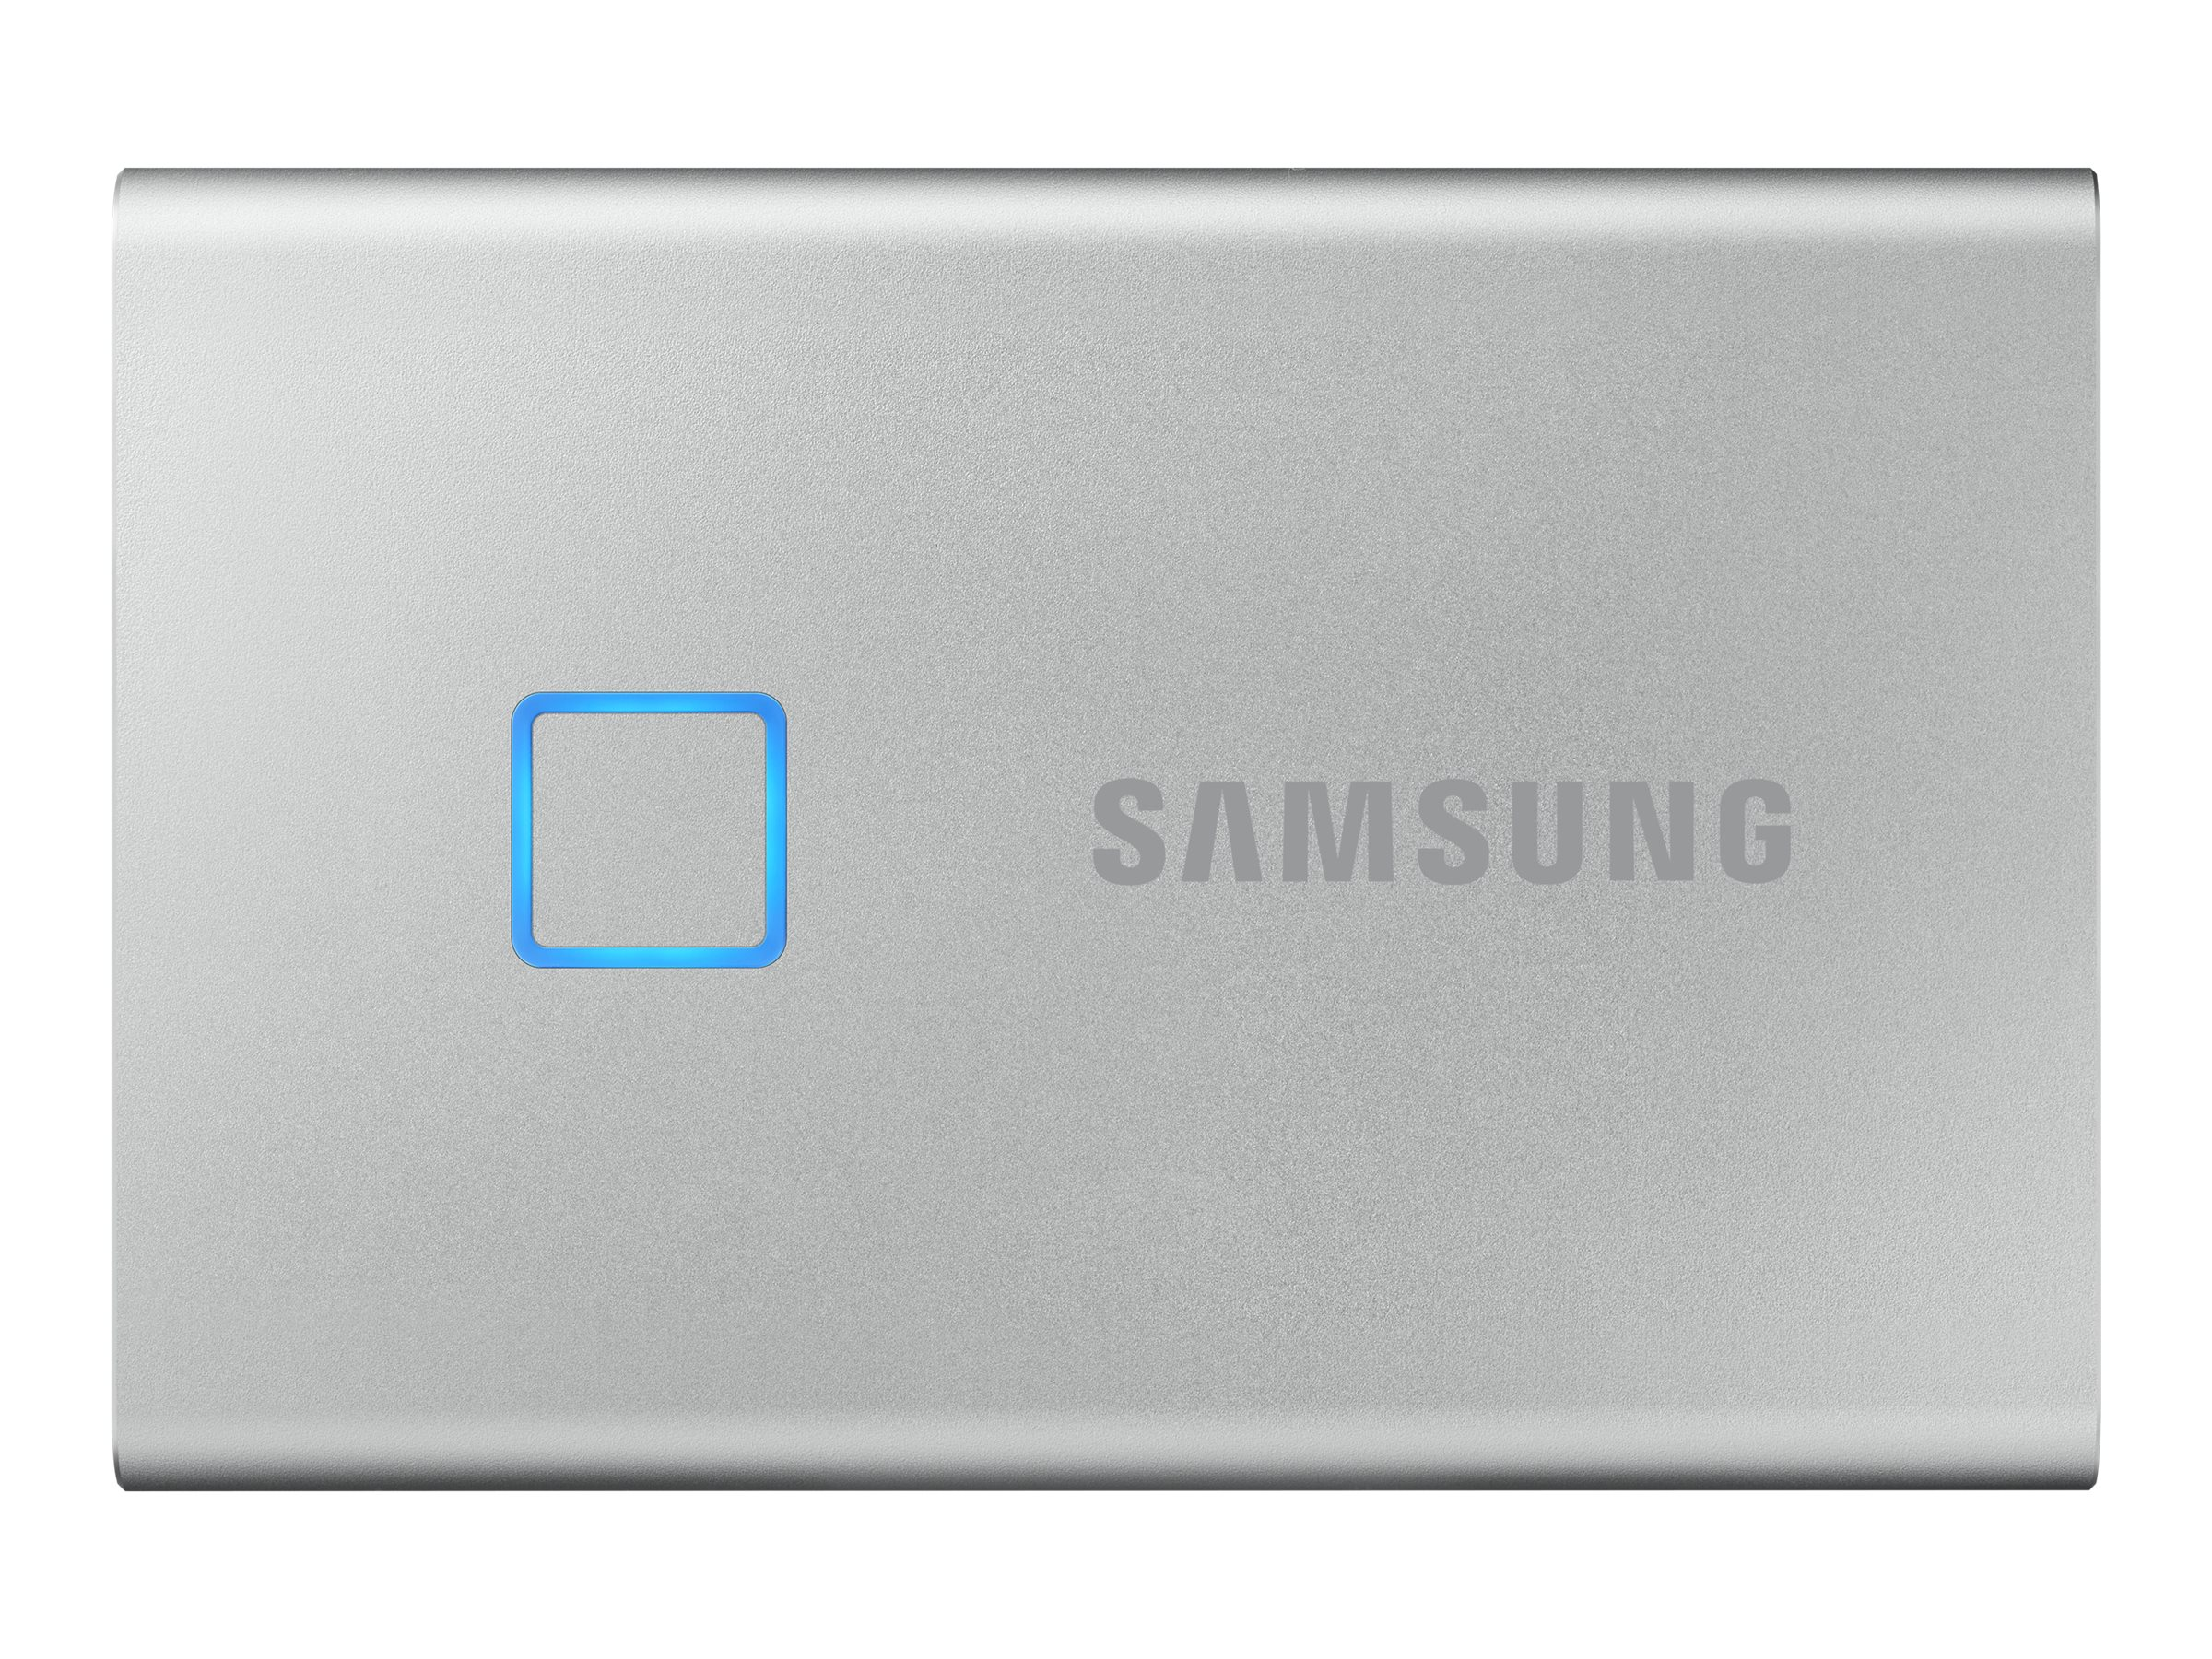 Samsung Portable SSD T7 Touch MU-PC1T0S - solid state drive - 1 TB - USB 3.2 Gen 2 -